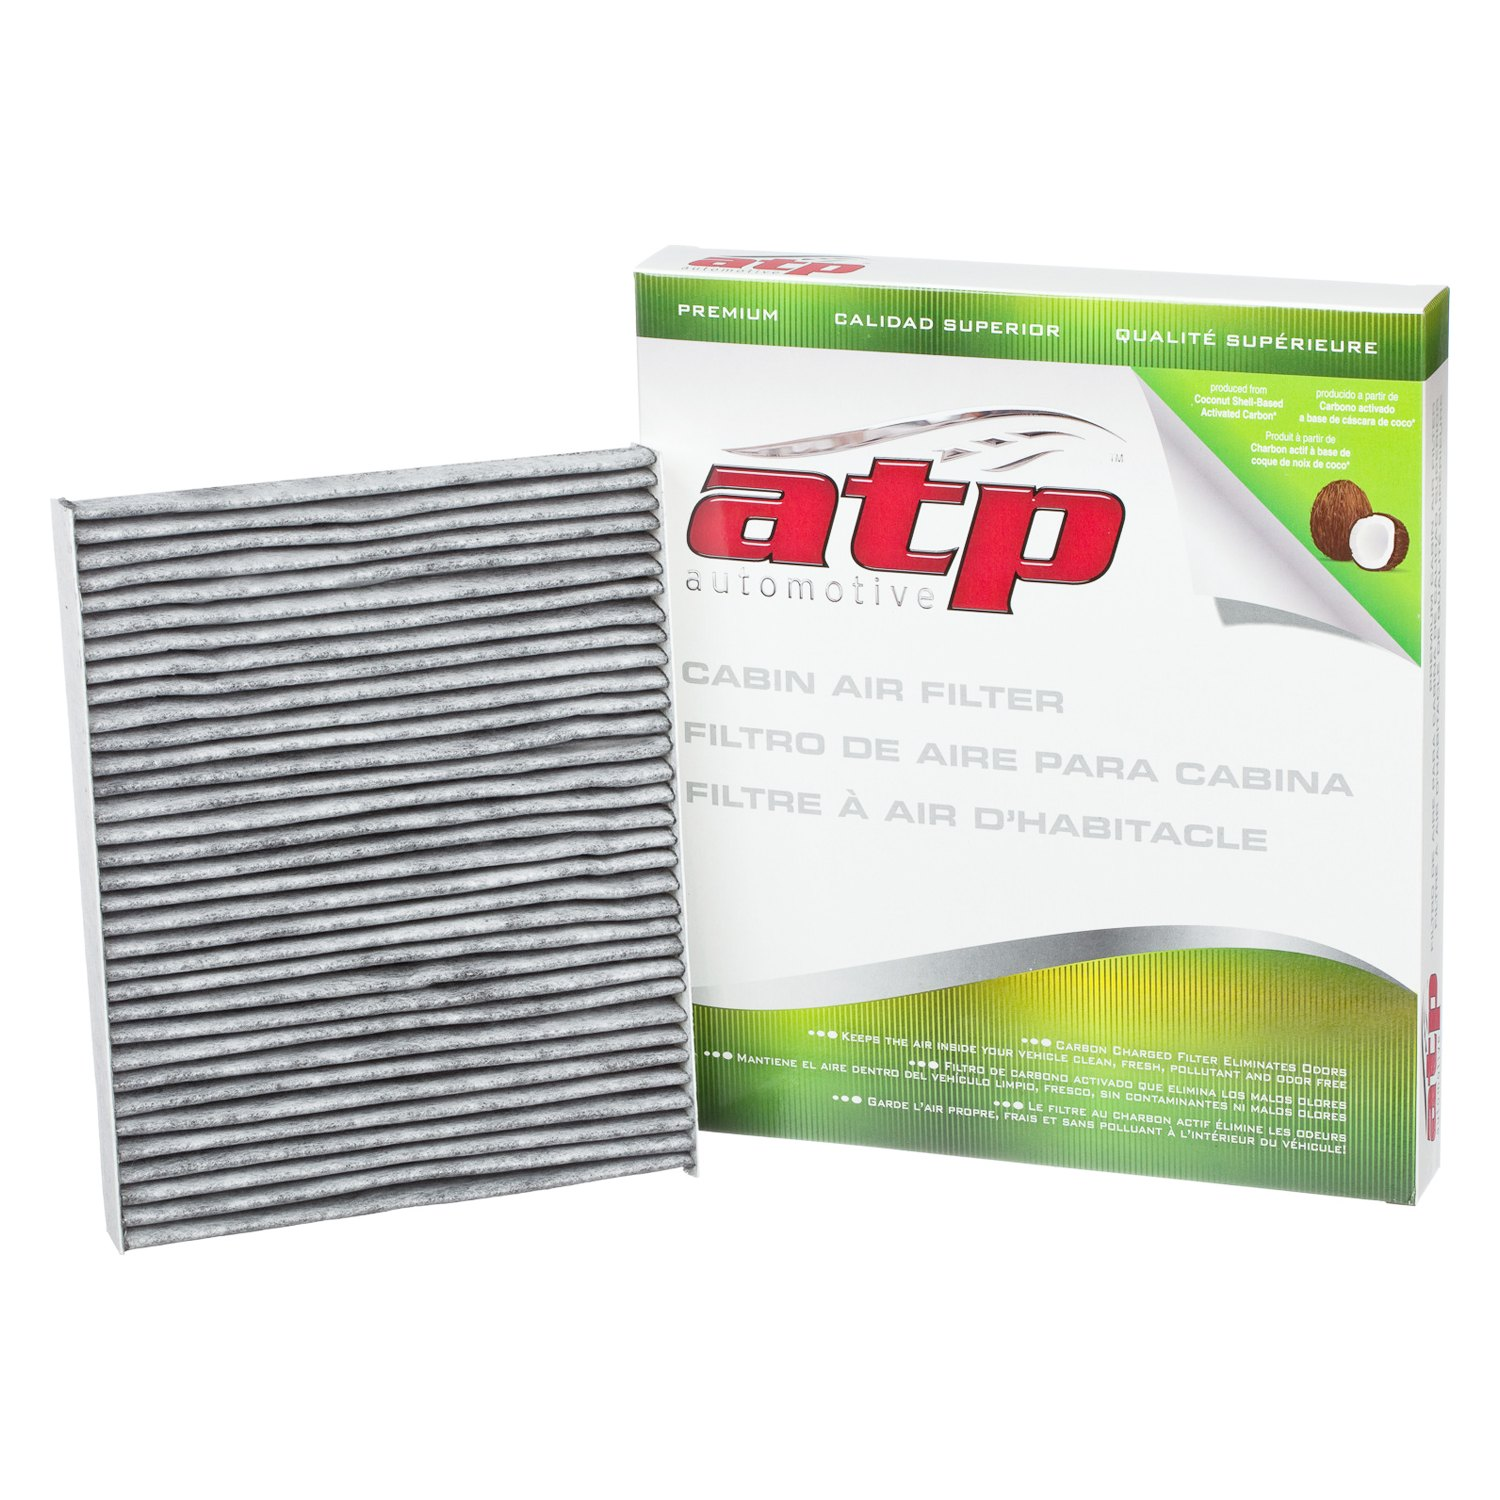 https://www.carid.com/images/atp/products/ra-148-2.jpg